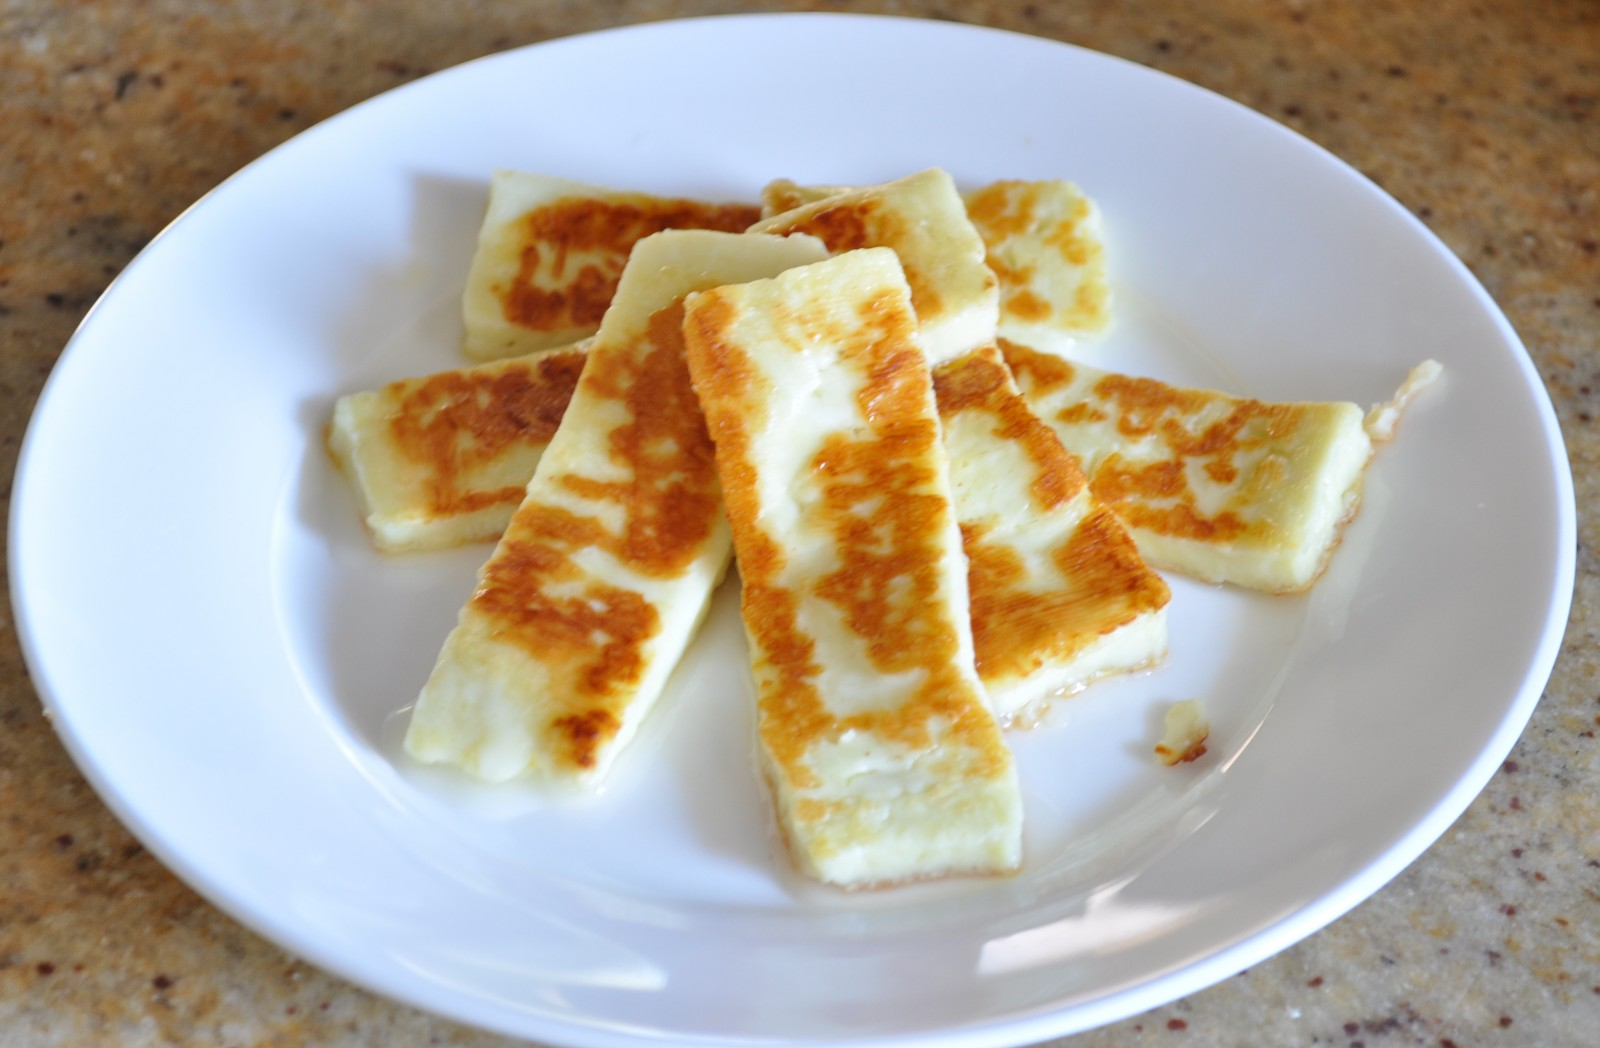 The great haloumi hunt